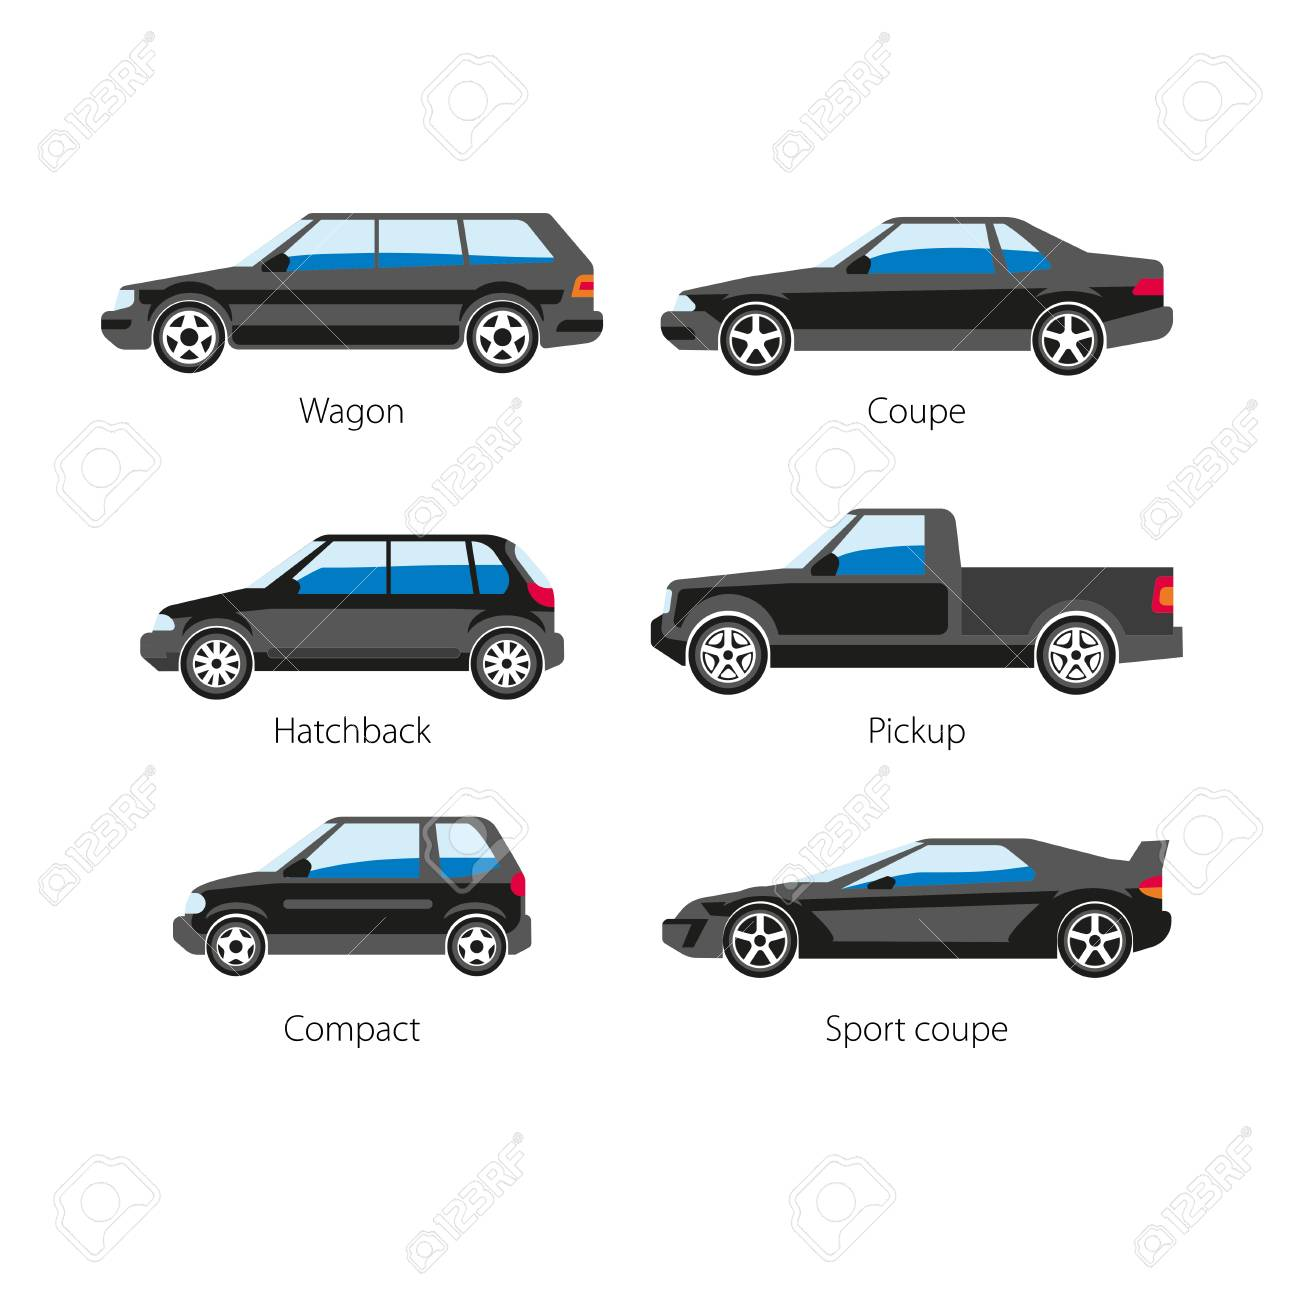 Car Automobile Body Types Set With Names Of Wagon Coupe Or Hatchback